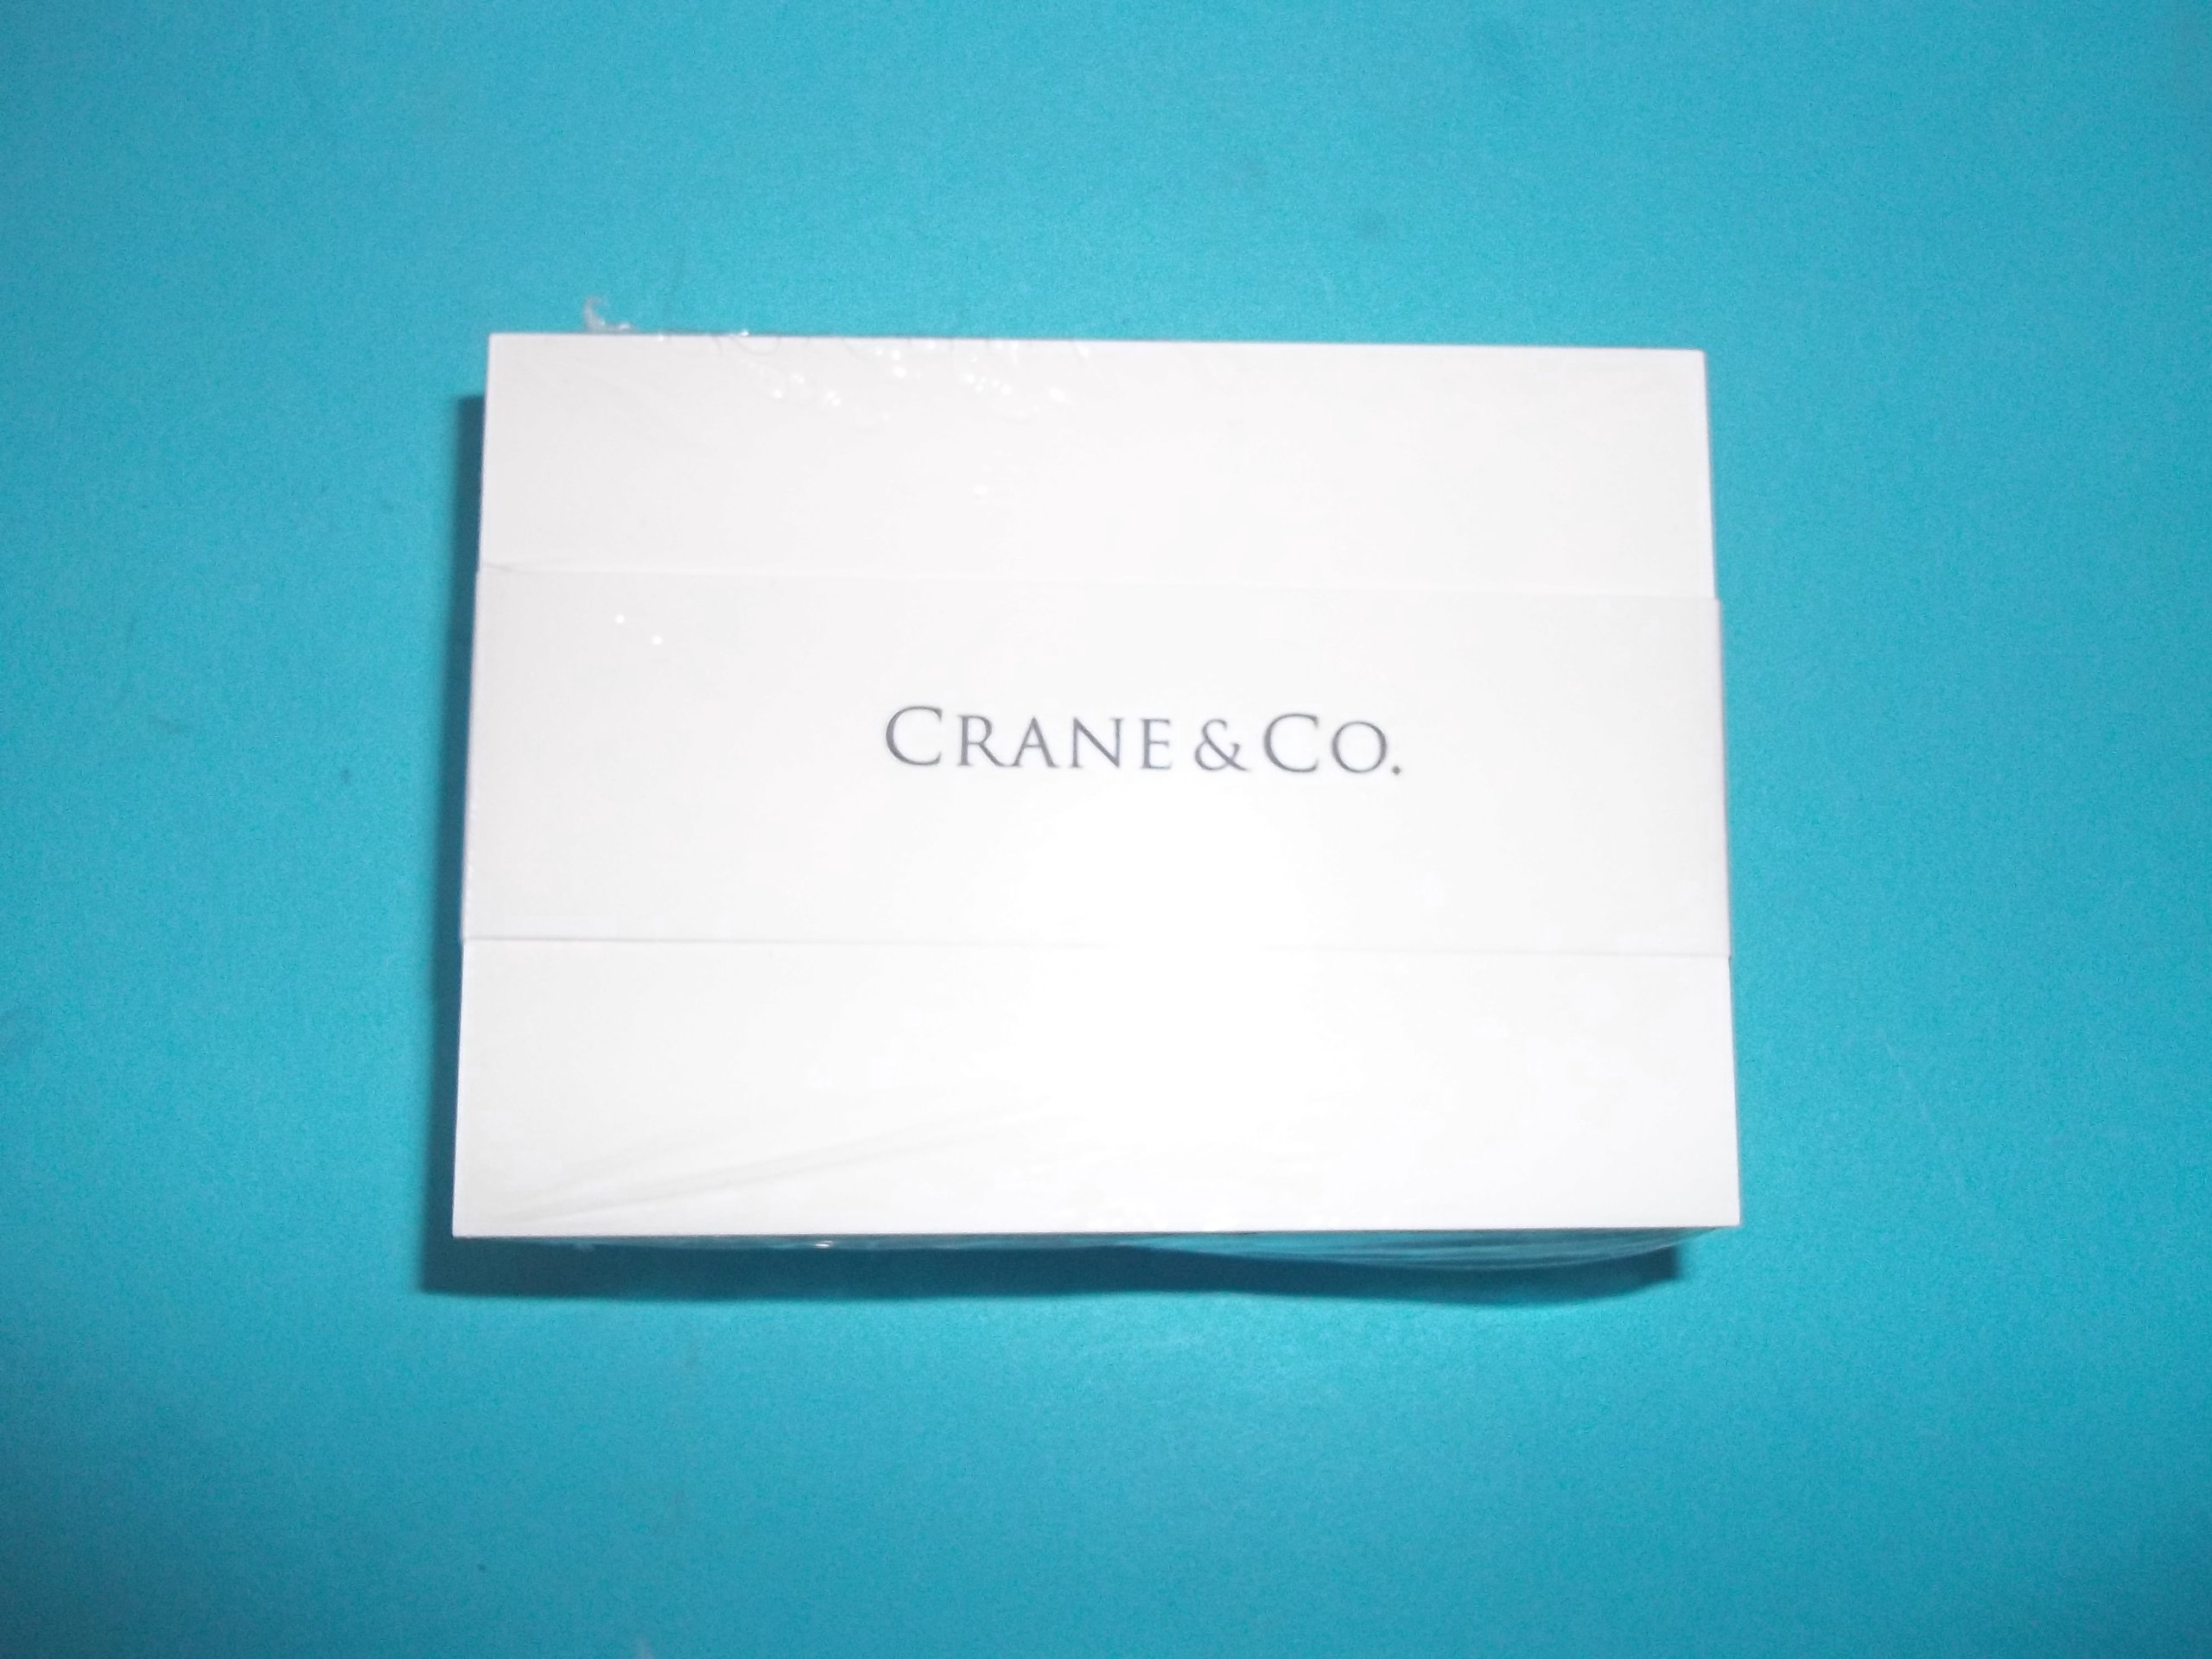 Crane CN941301A White Blank Note Cards 2 1/2'' x 3 1/2'' 100 Per Package Made in USA Limit 1 Per Customer